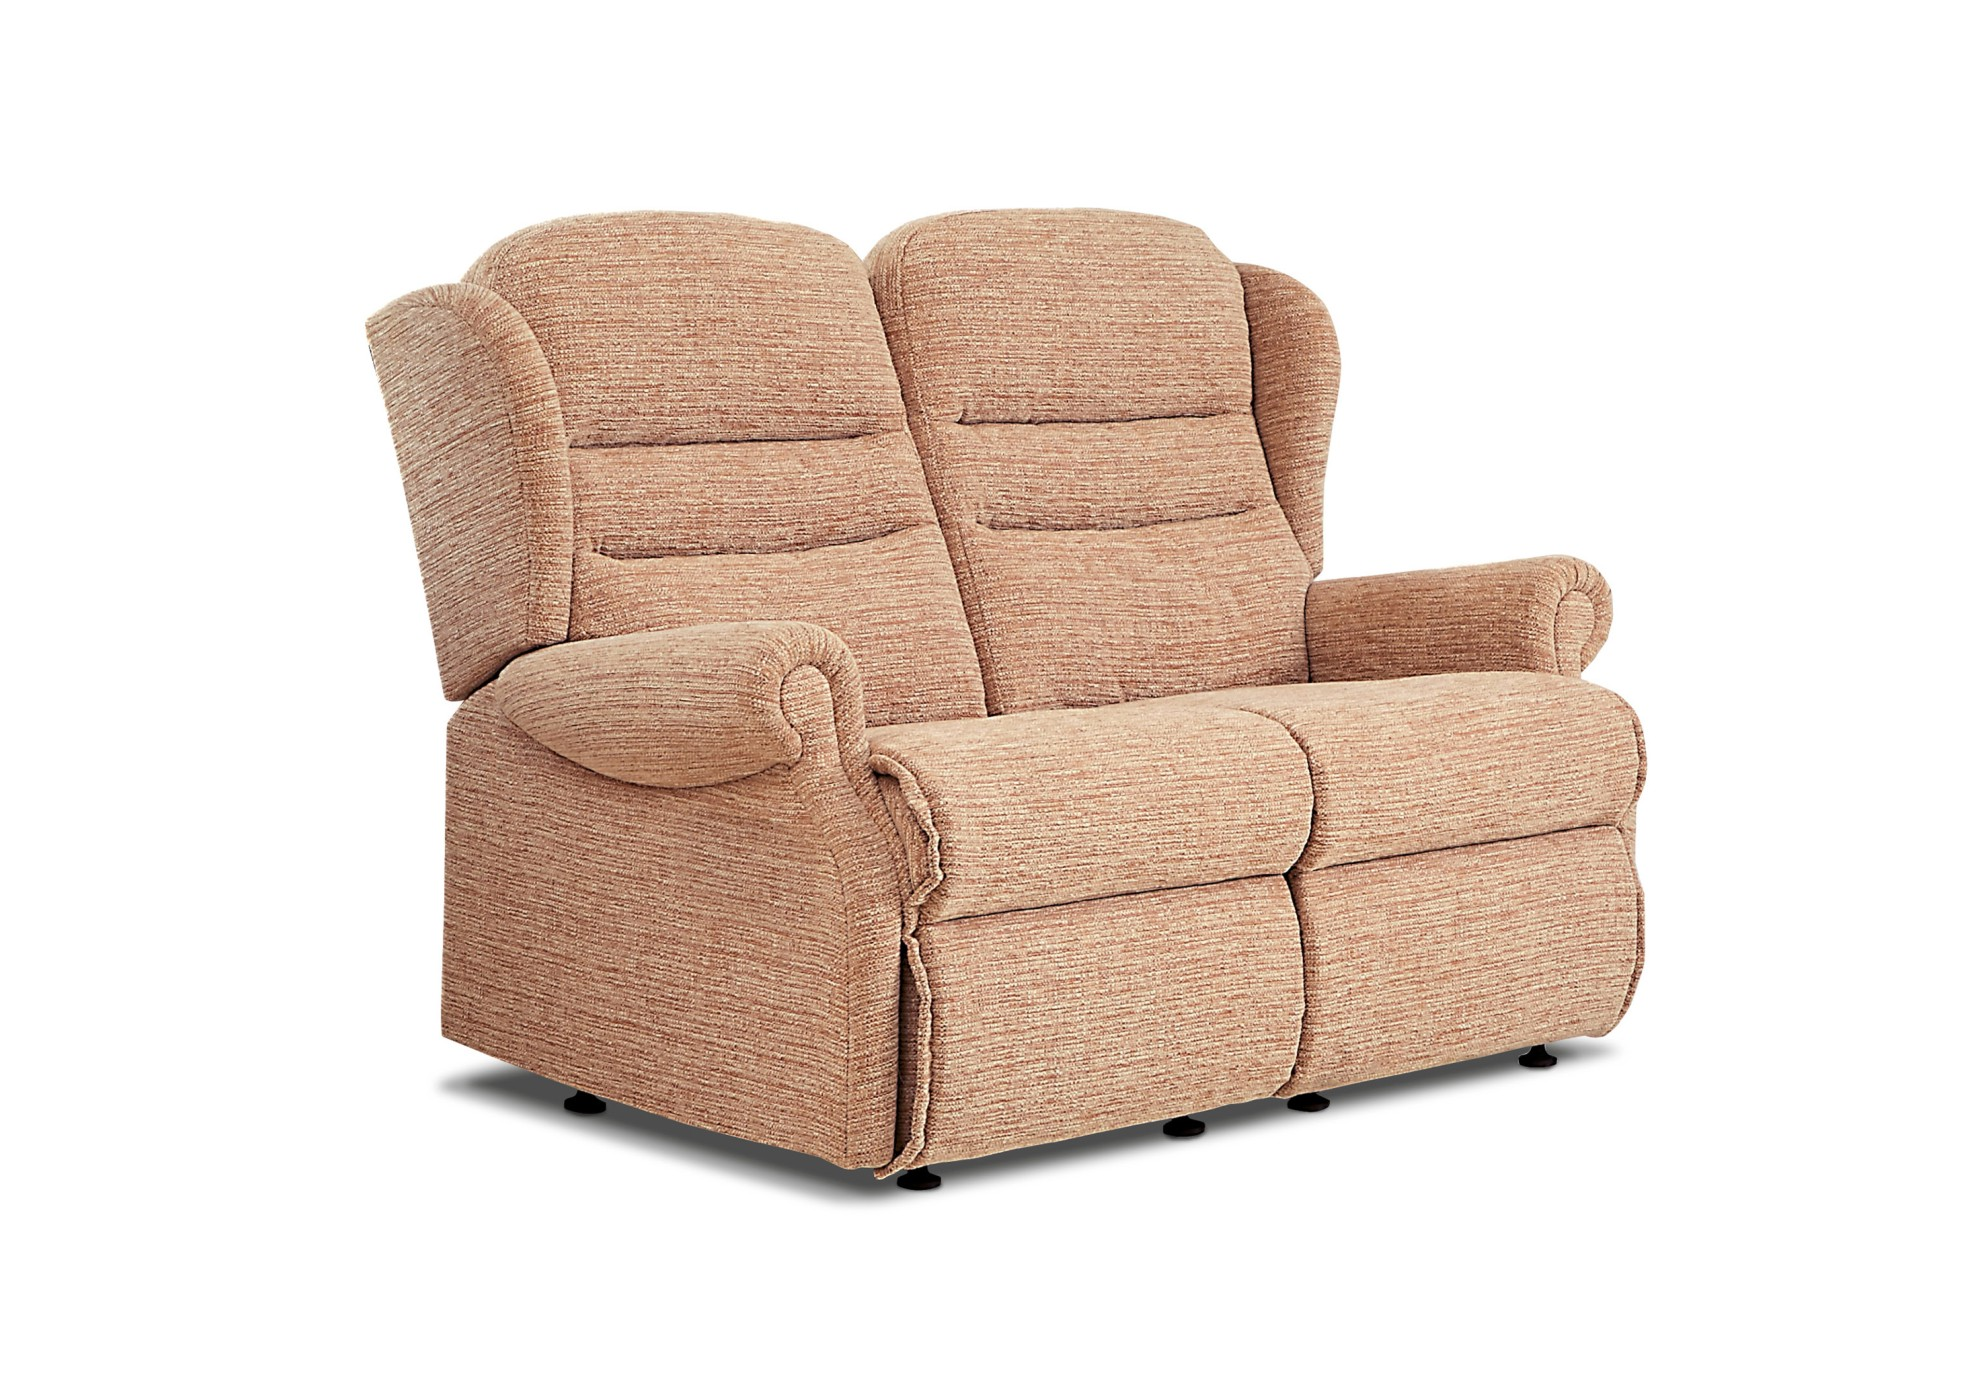 Ashford 2 Seater Sofa